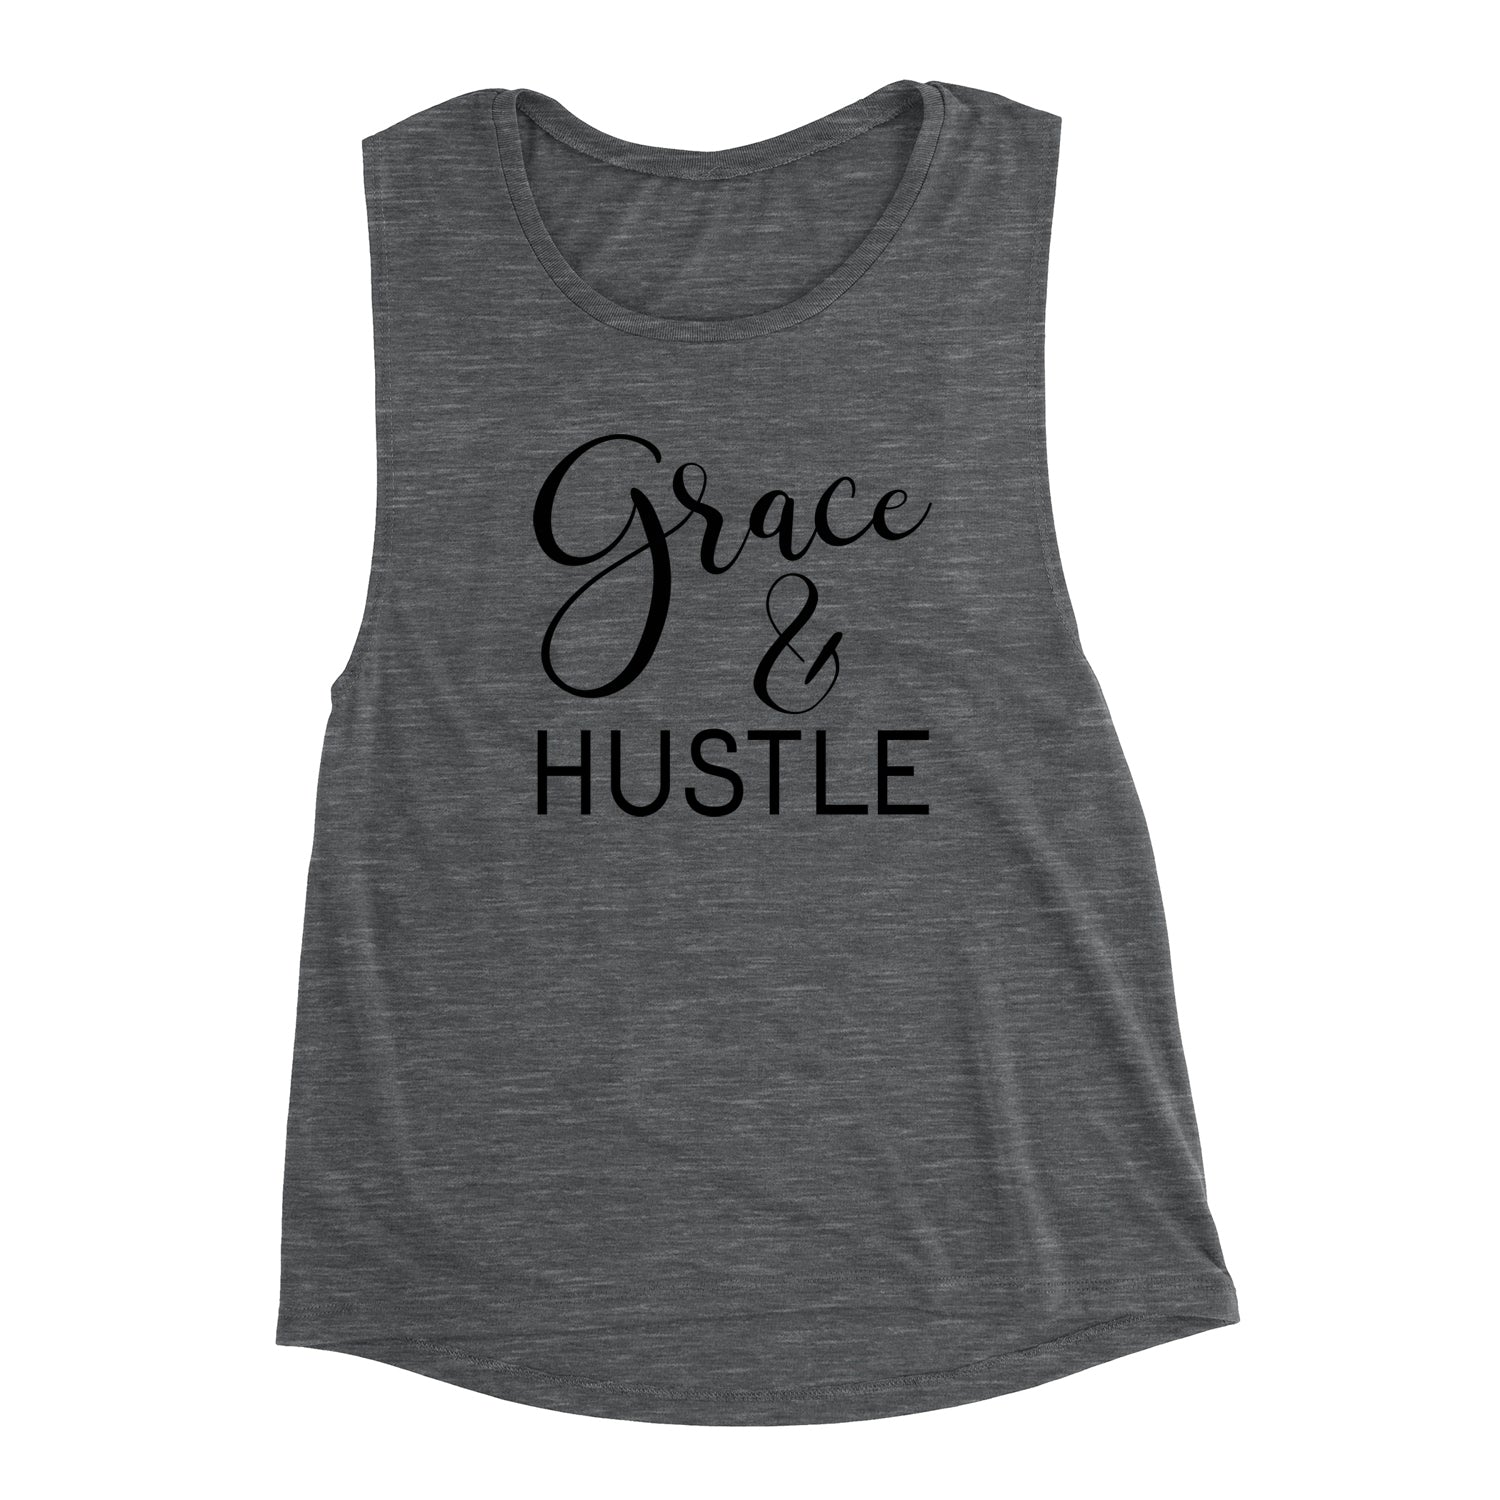 Grace and Hustle Muscle Tank. Christian Shirt. Faith. Workout Tank. Fitness Tank. Inspiration. She Is strong. Grace Shirt.